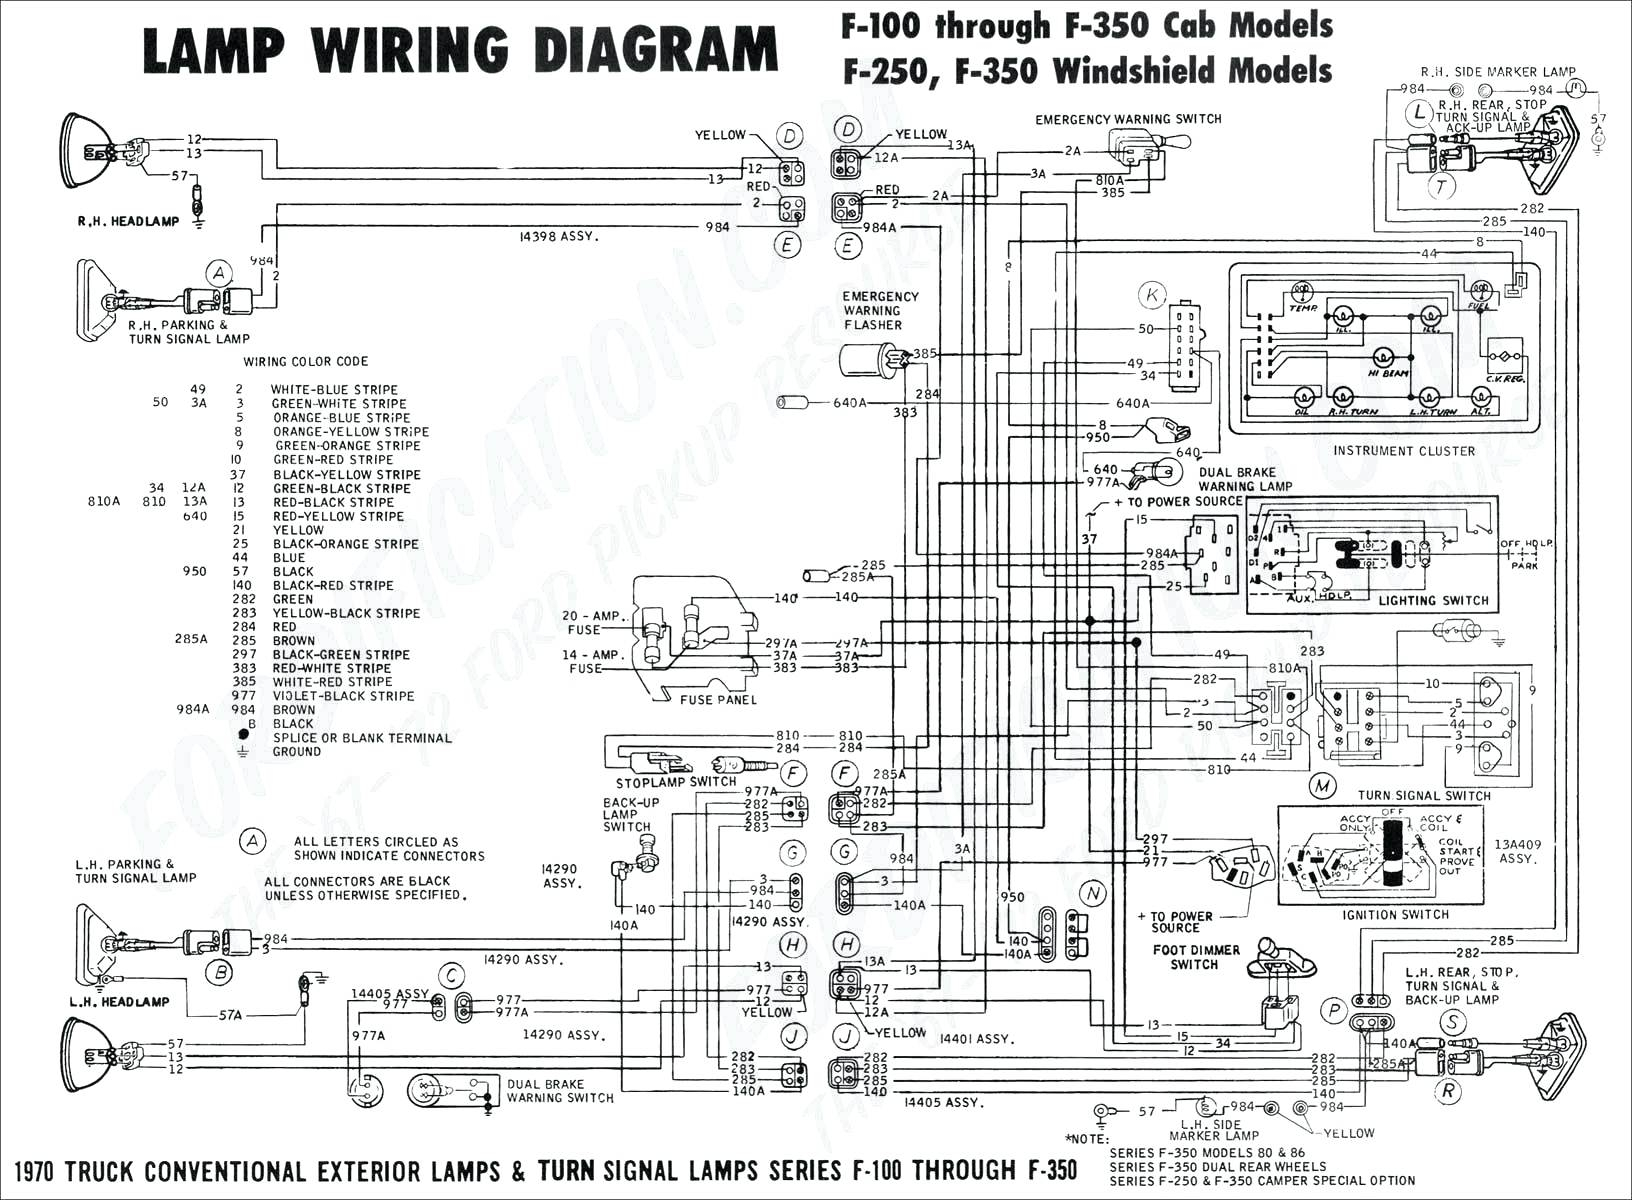 Schematic Dodge Ram 1500 Wiring Diagram Free from wholefoodsonabudget.com